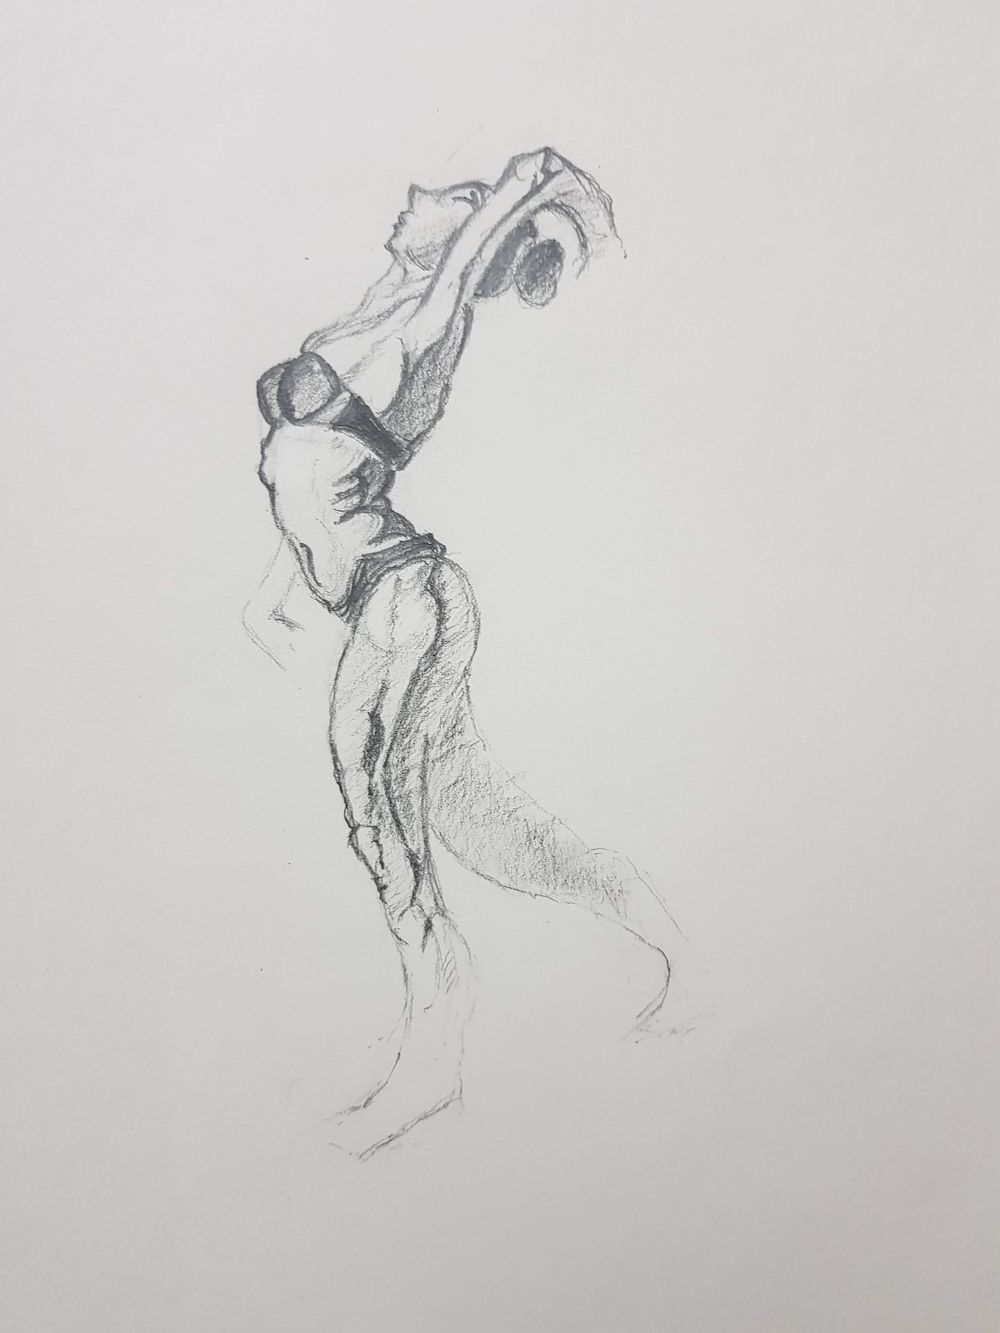 The Basic Skills - The Art & Science of Drawing - image 3 - student project